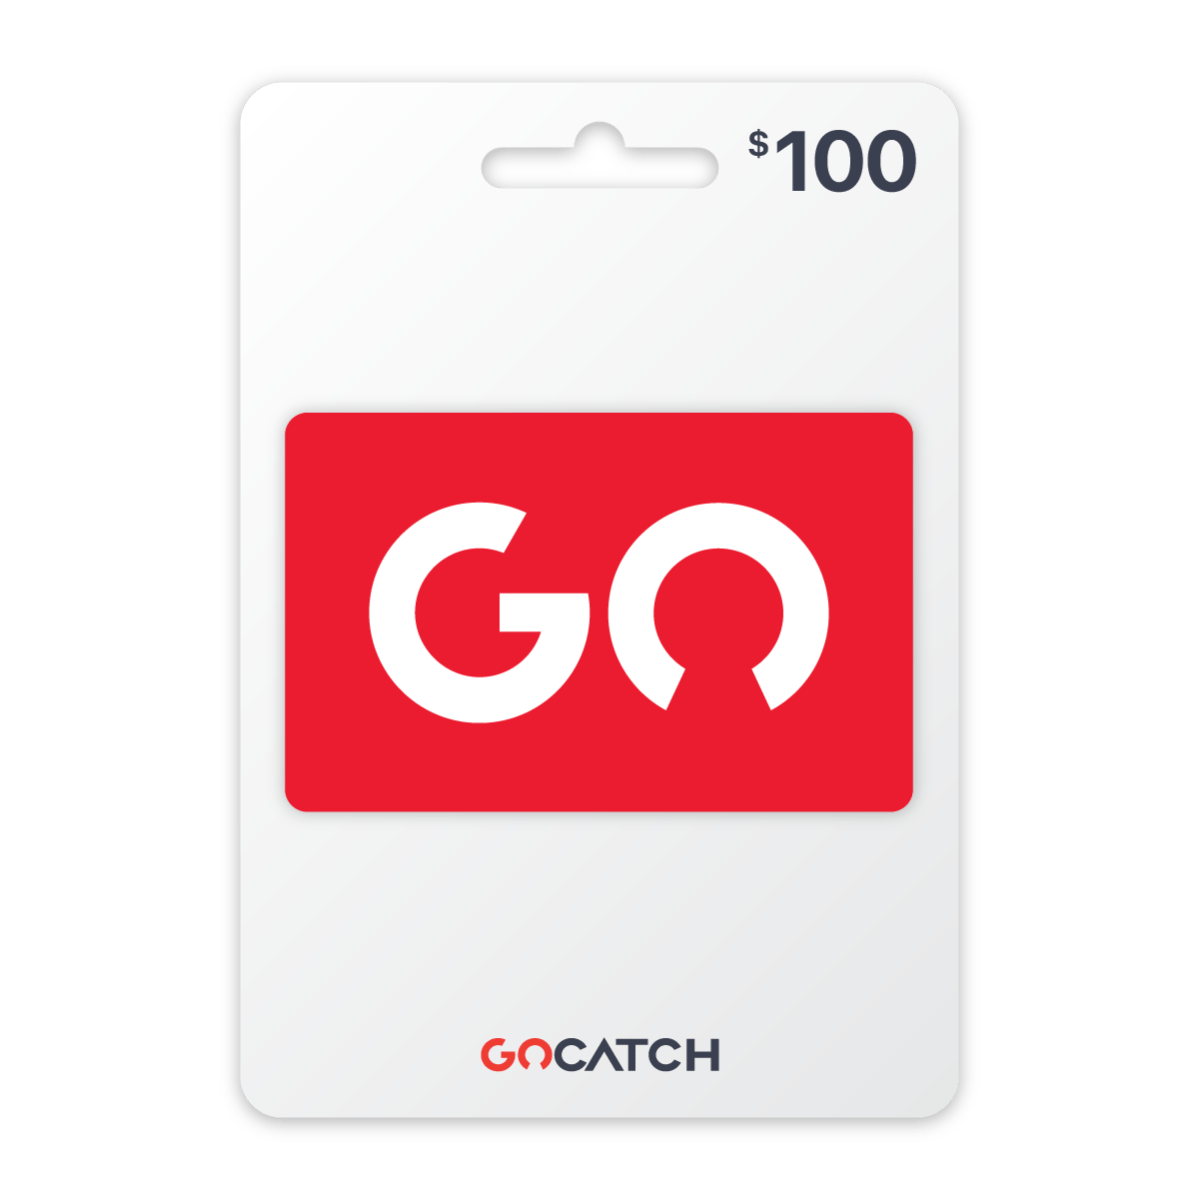 $100 Gift Card 3